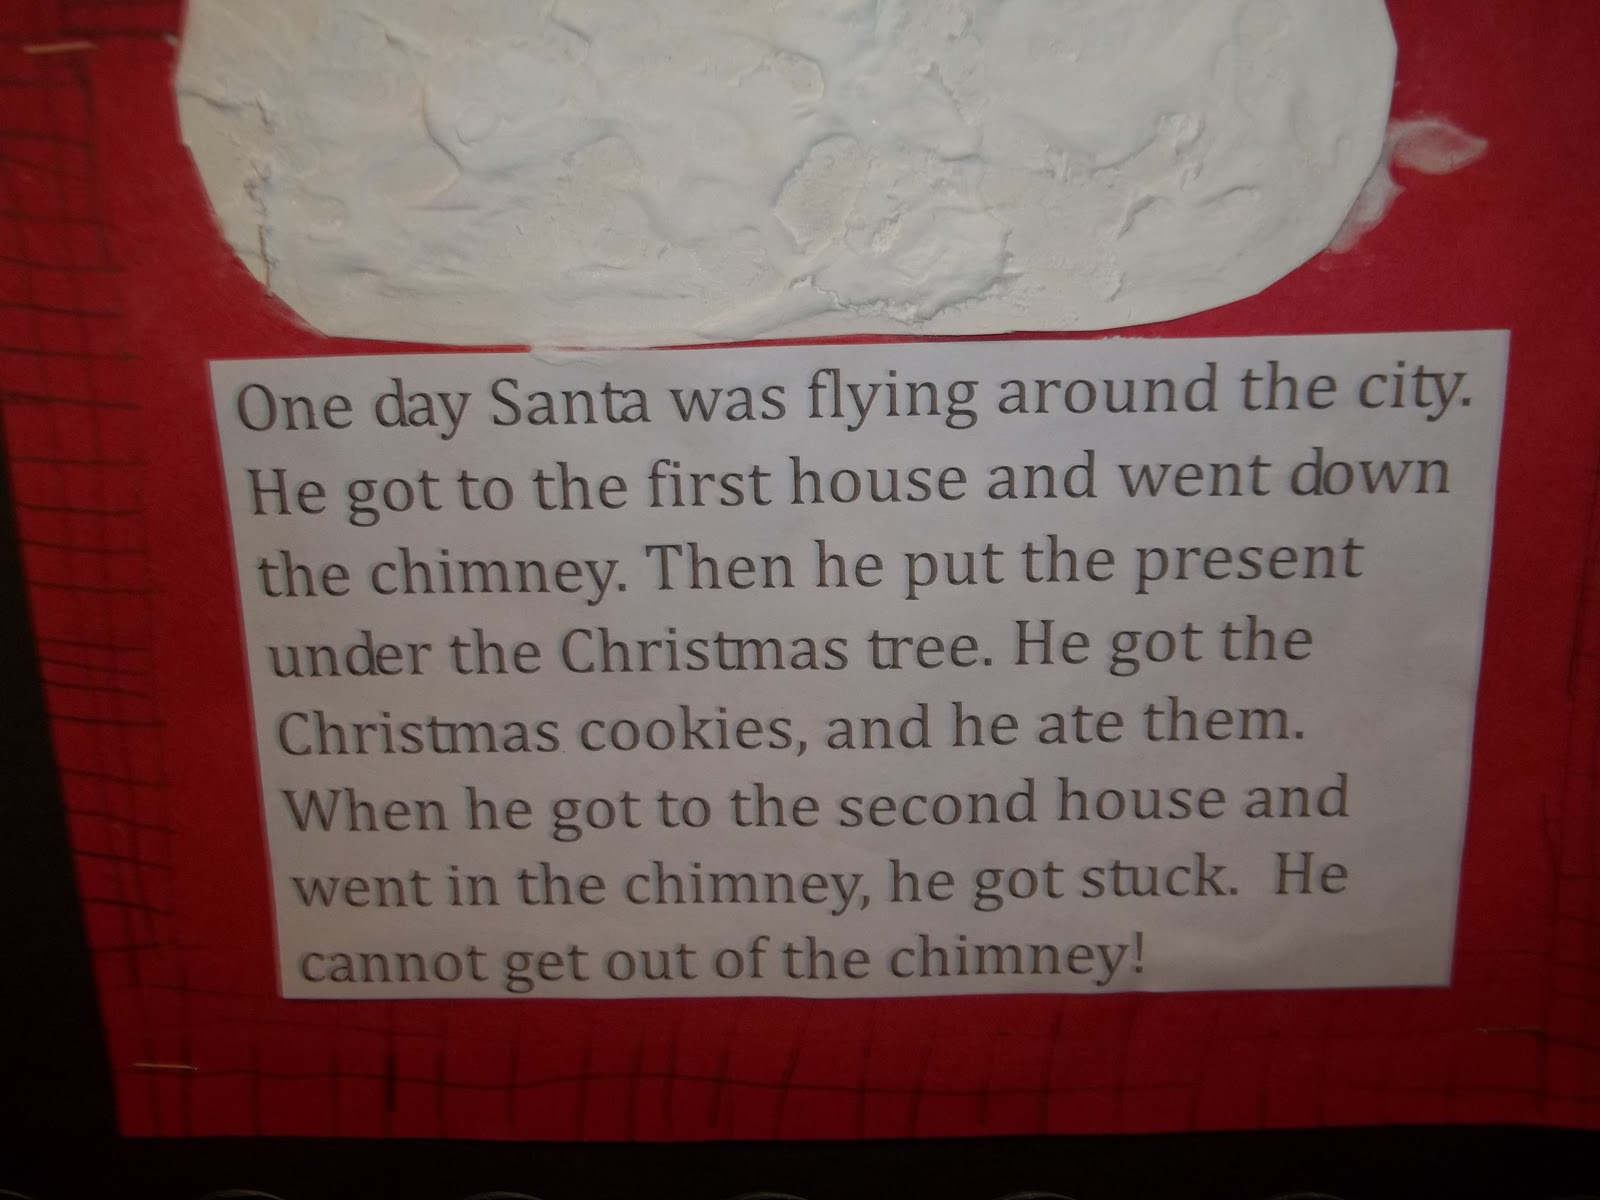 santa got stuck in the chimney text